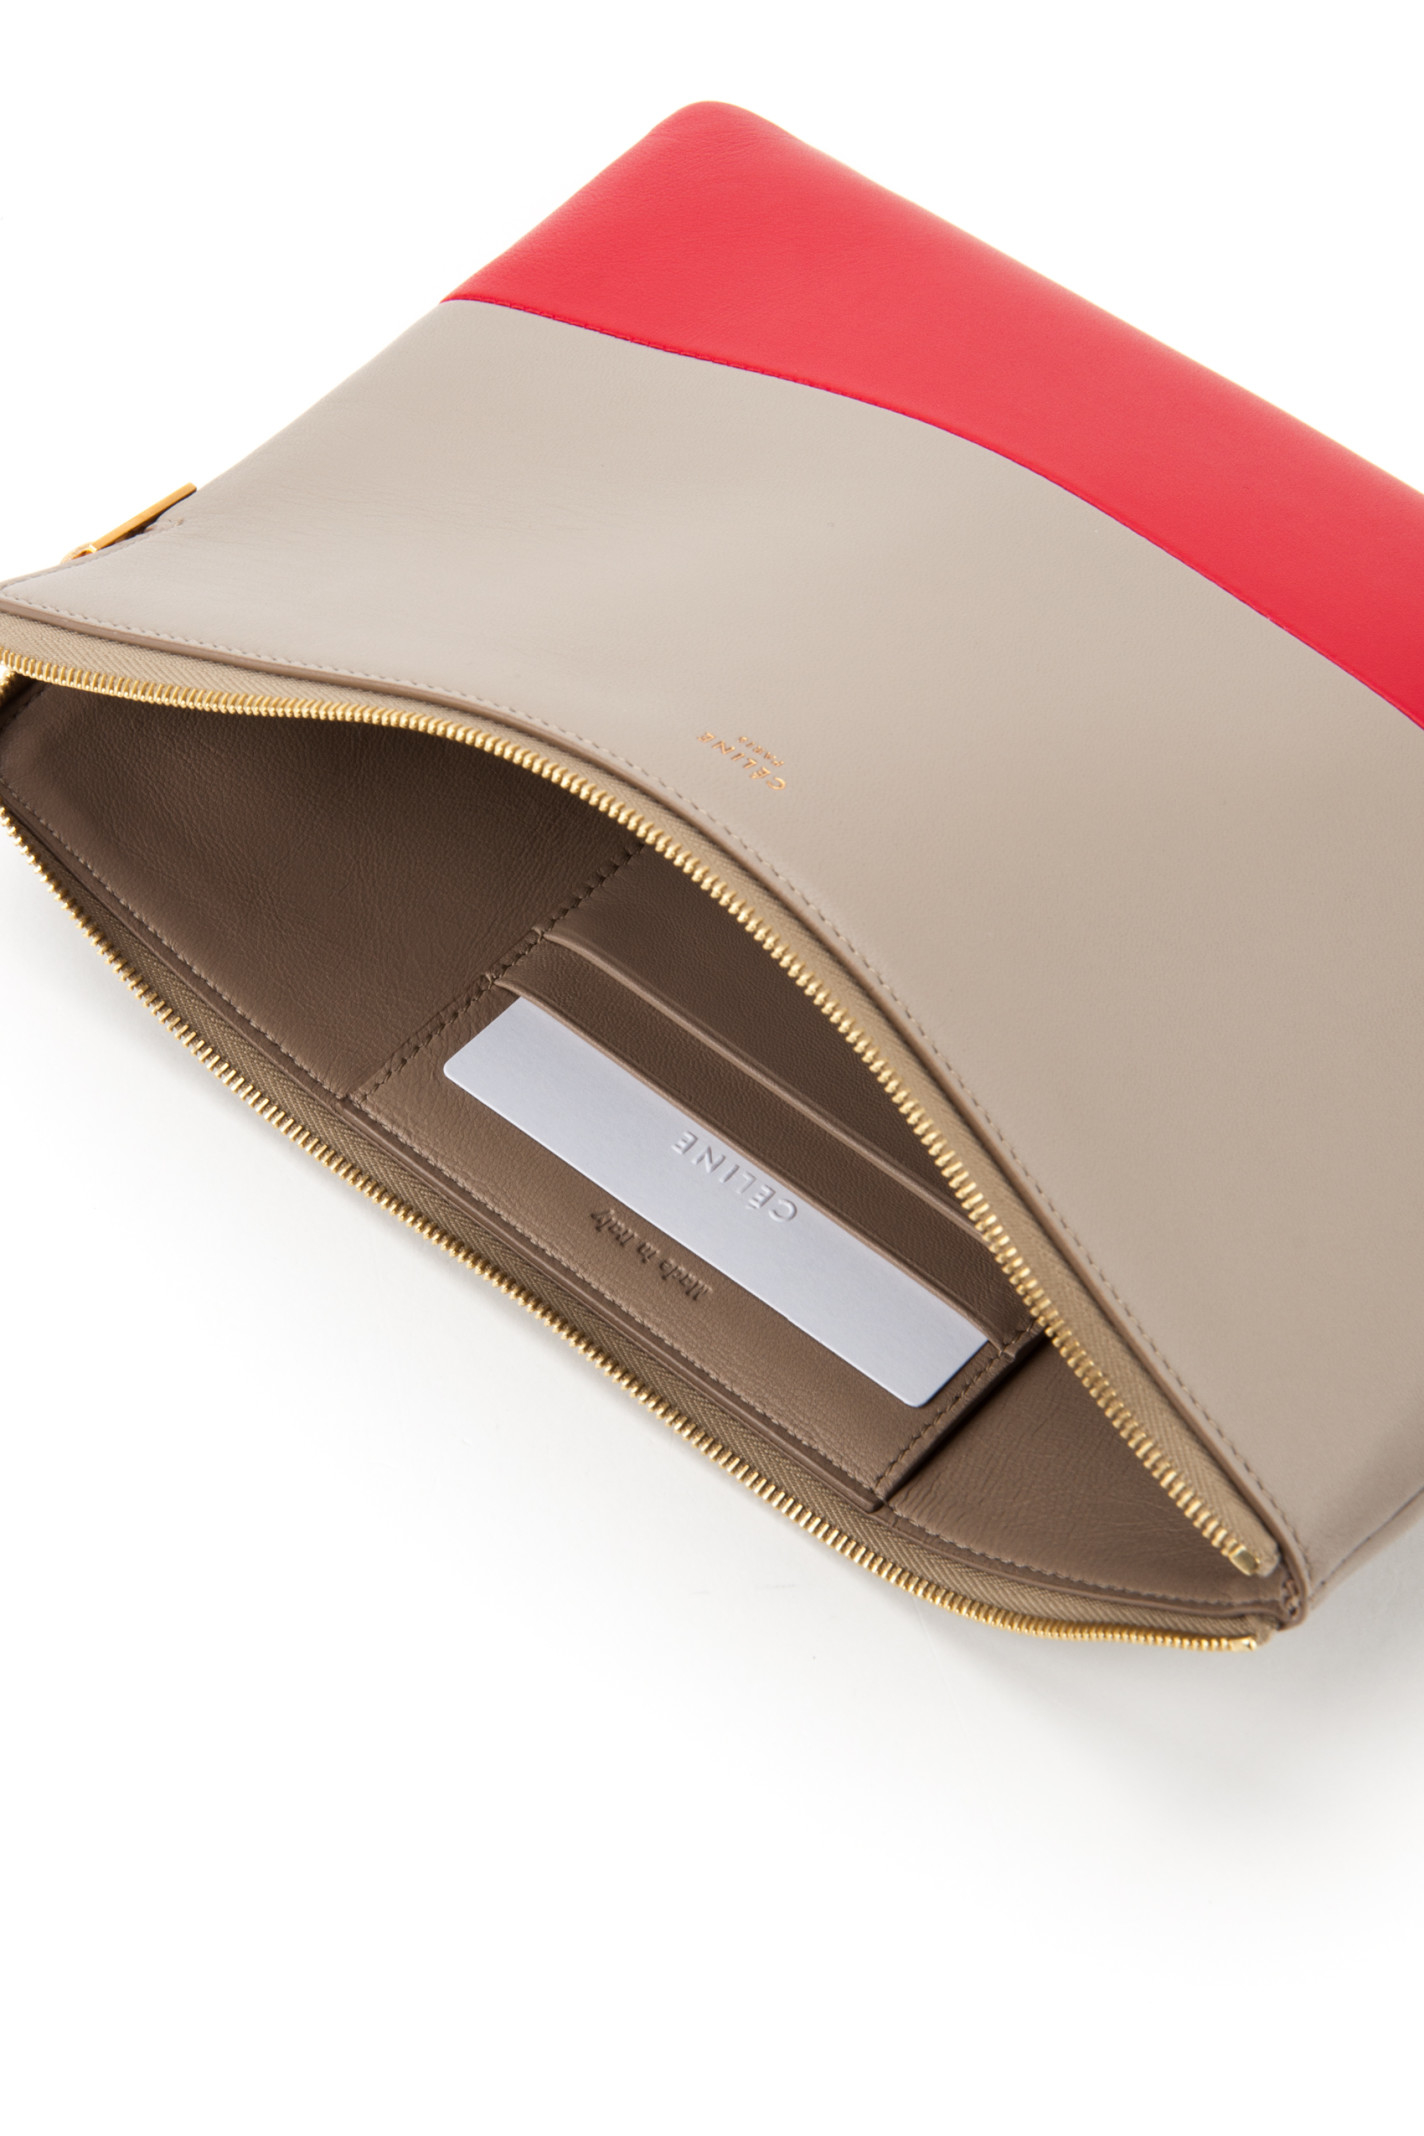 C¨¦line Clutch Pouch in Red (LIGHT TAUPE RED) | Lyst